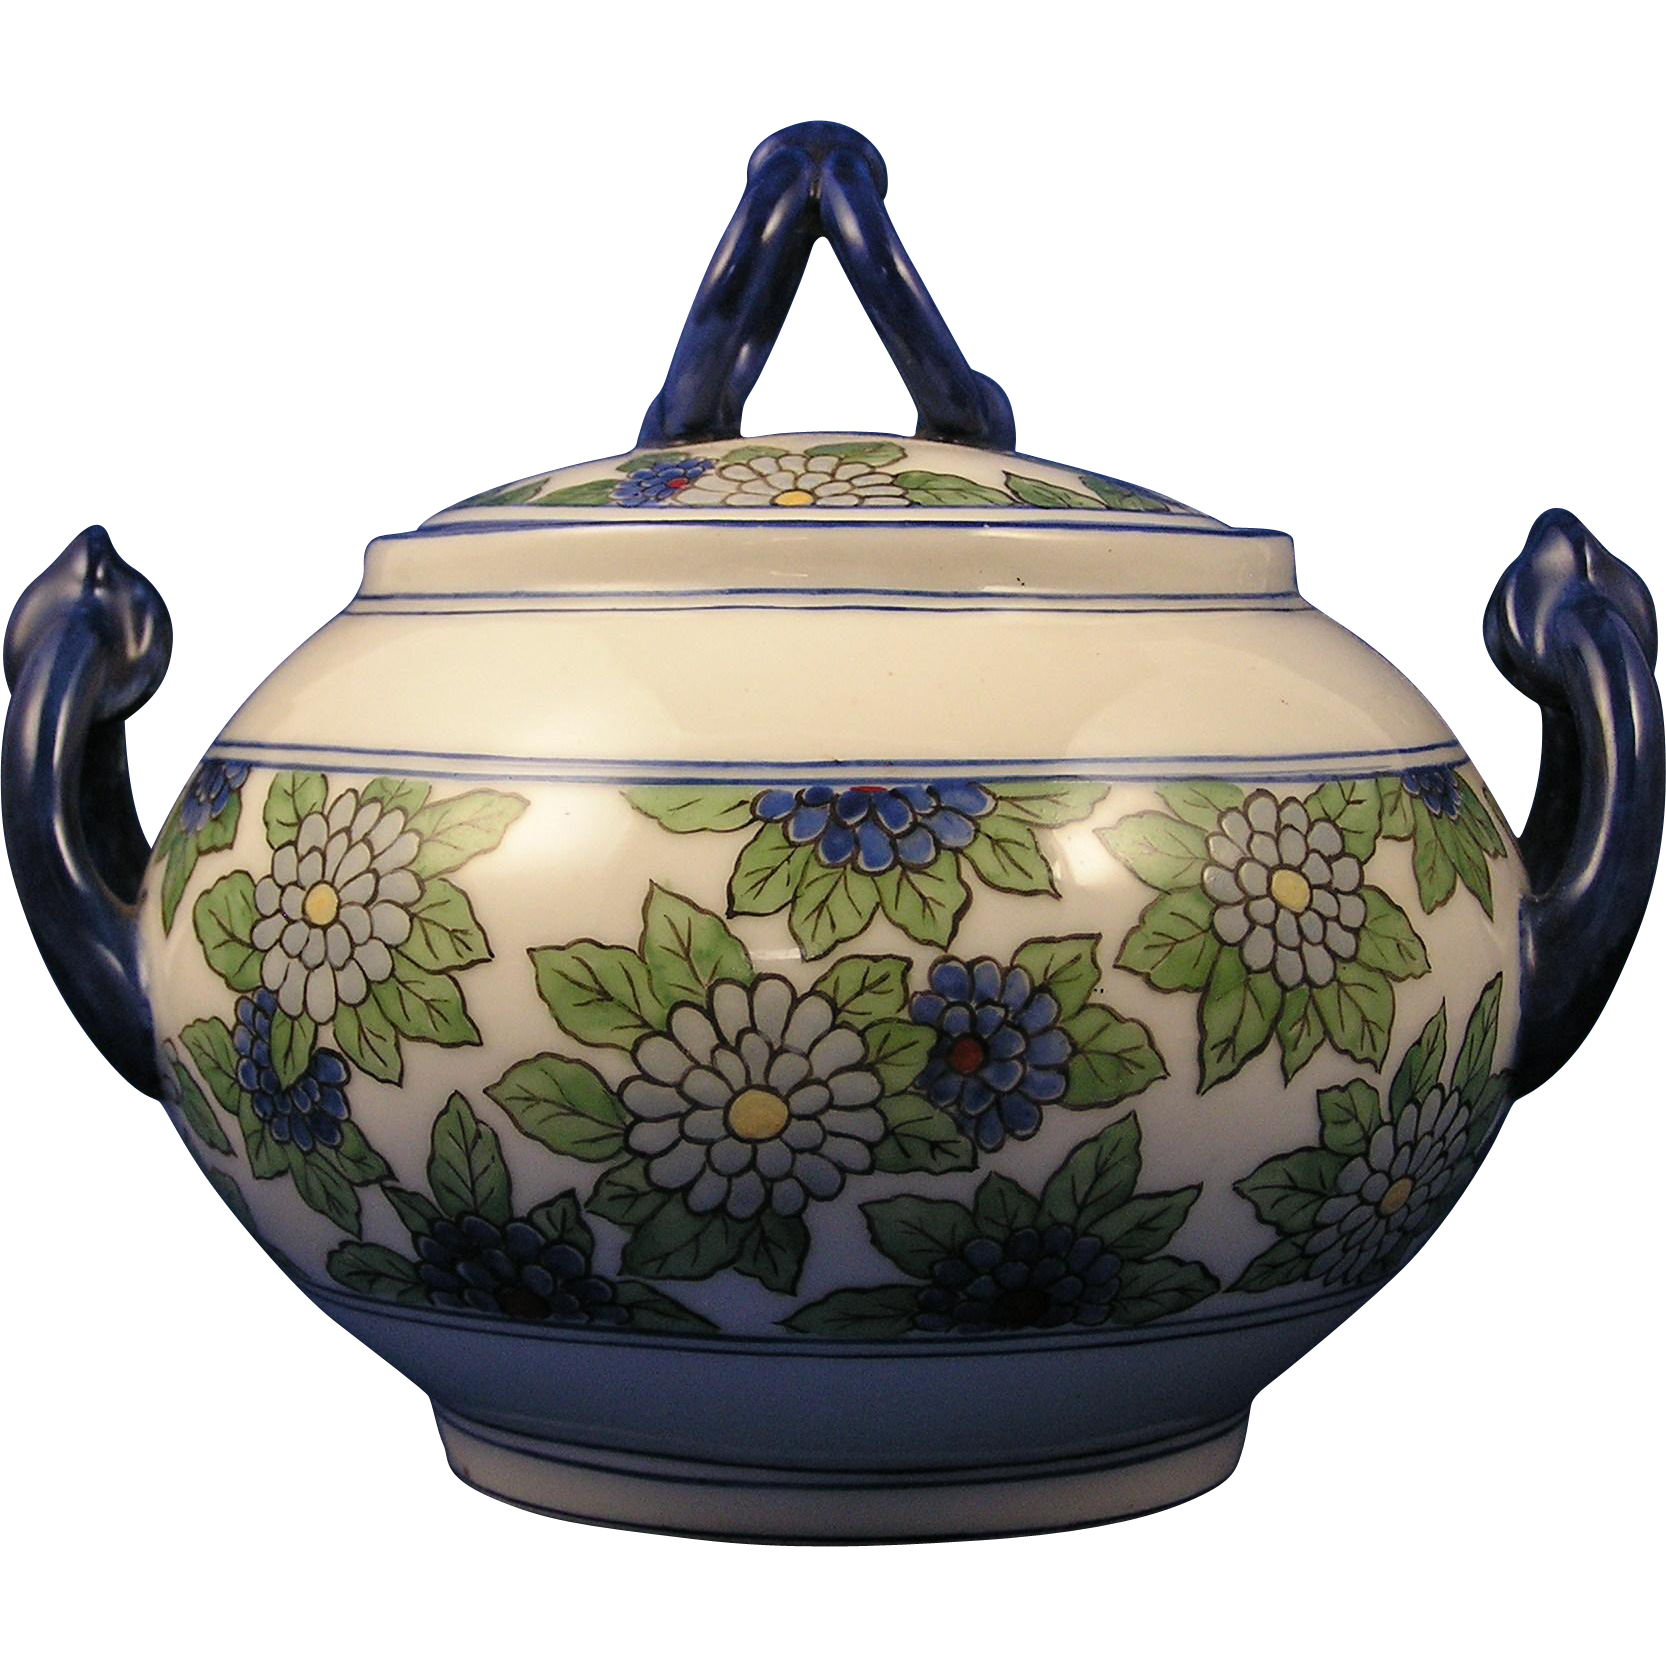 William Guerin & Co. (WG&Co.) Limoges Enameled Floral Motif Sugar/Trinket Jar (Signed/c.1891-1900)